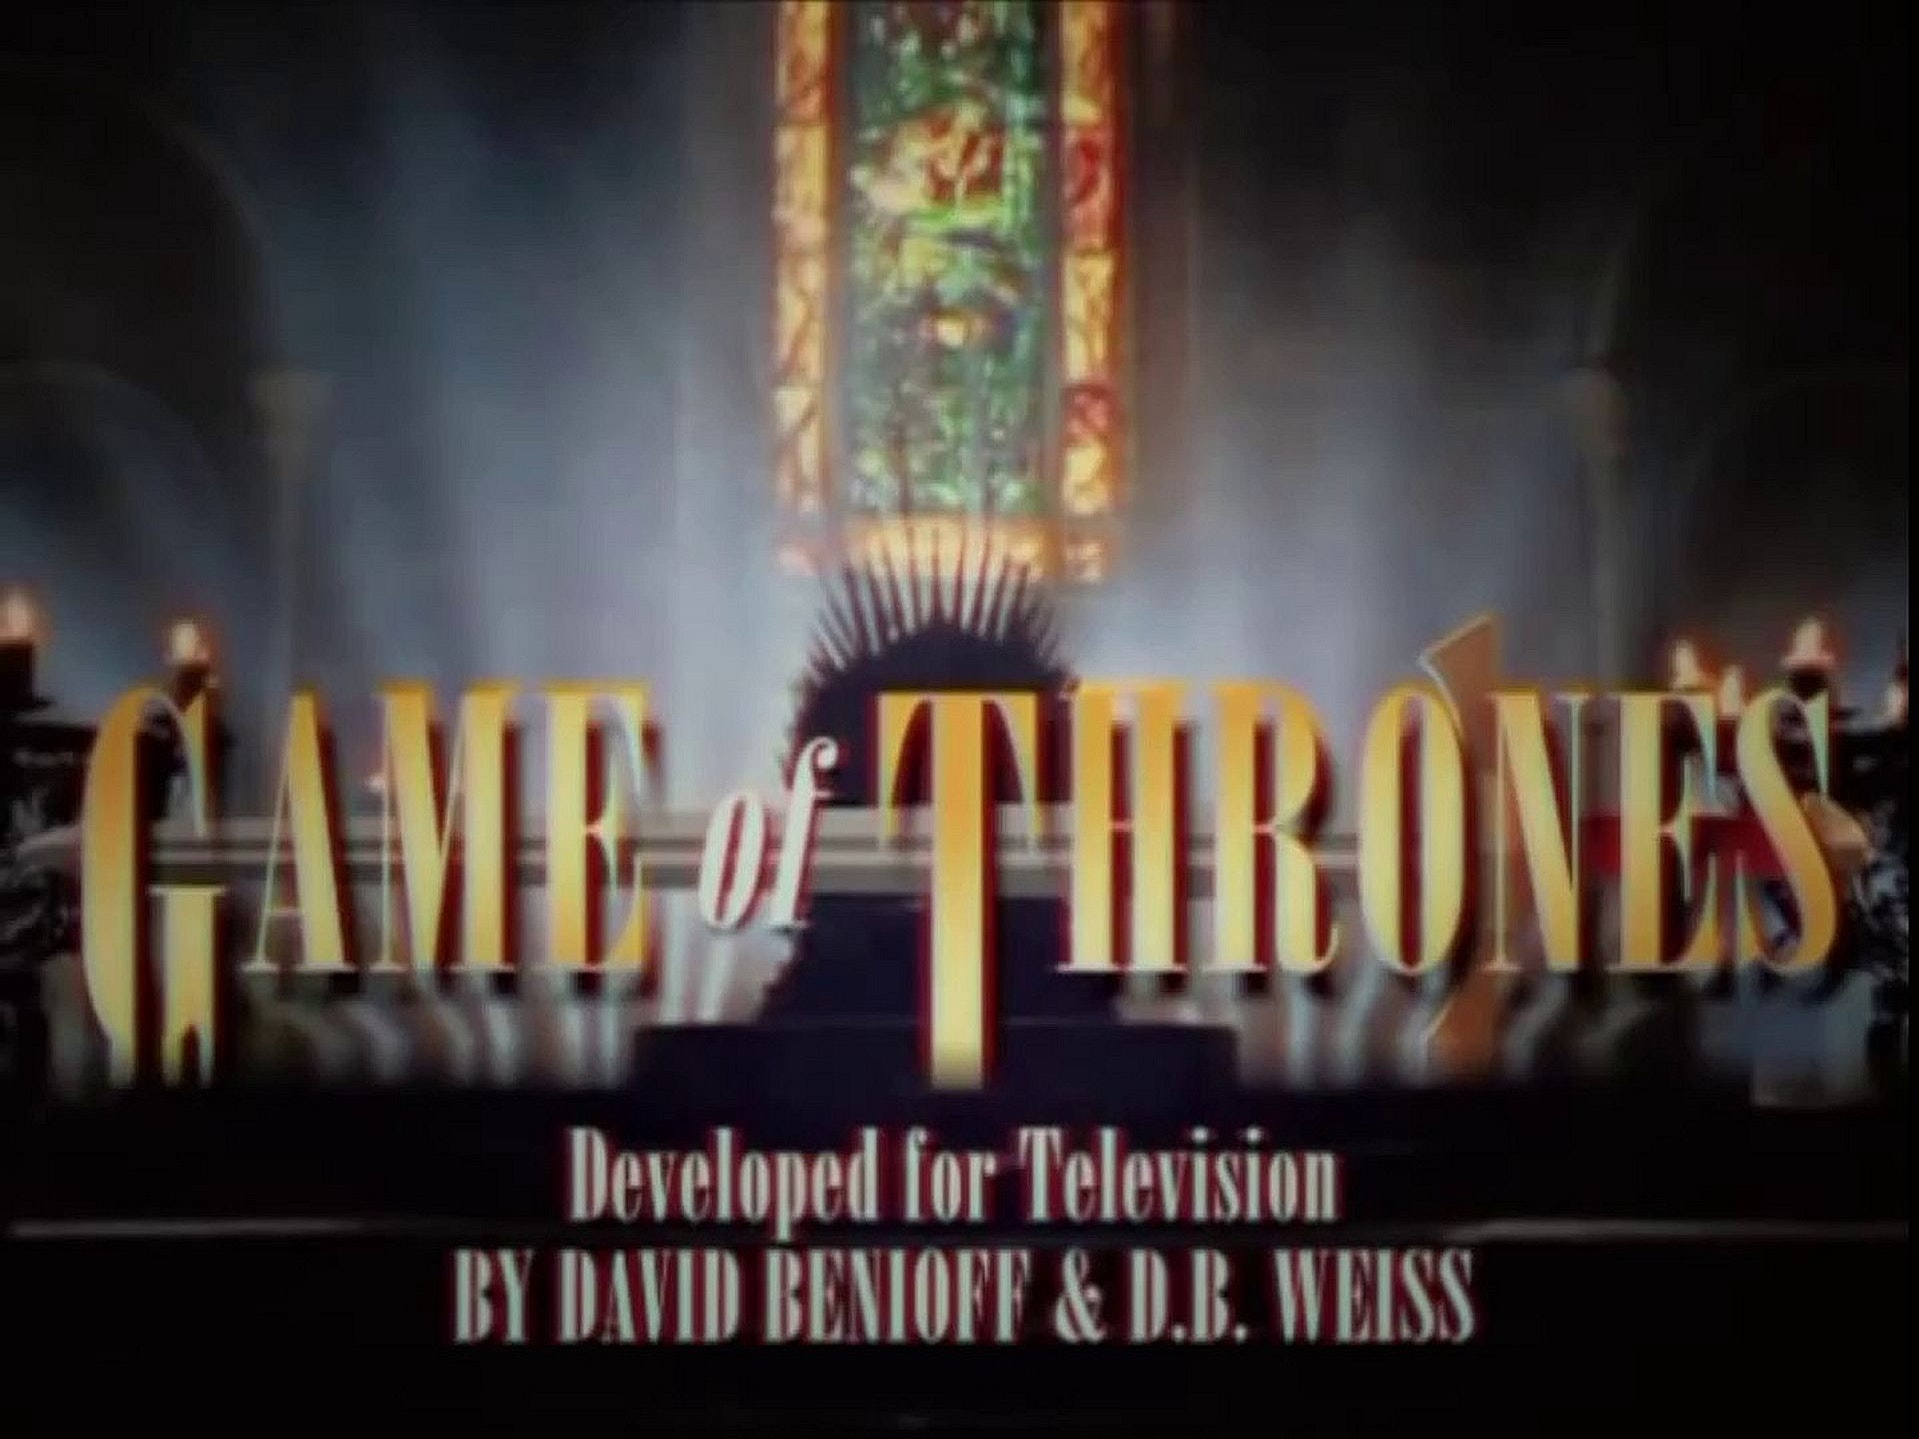 90s Game Of Thrones